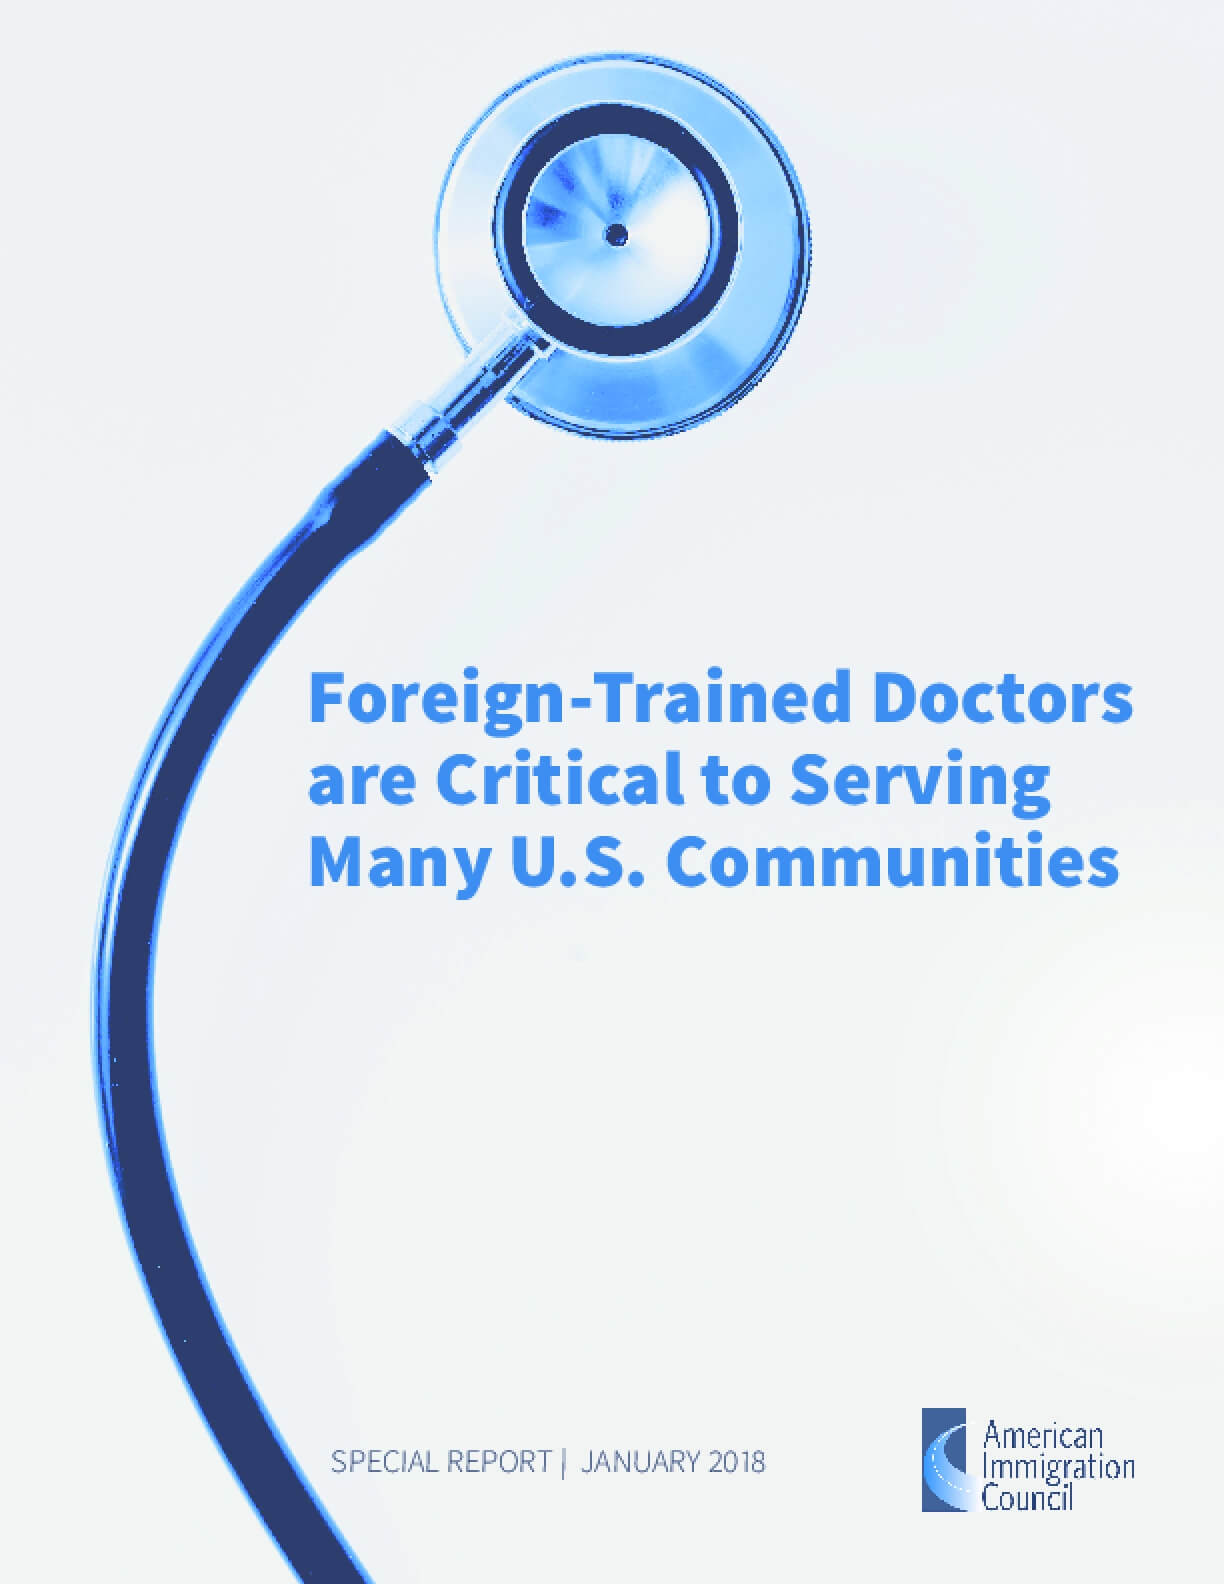 Foreign-Trained Doctors are Critical to Serving Many U.S. Communities